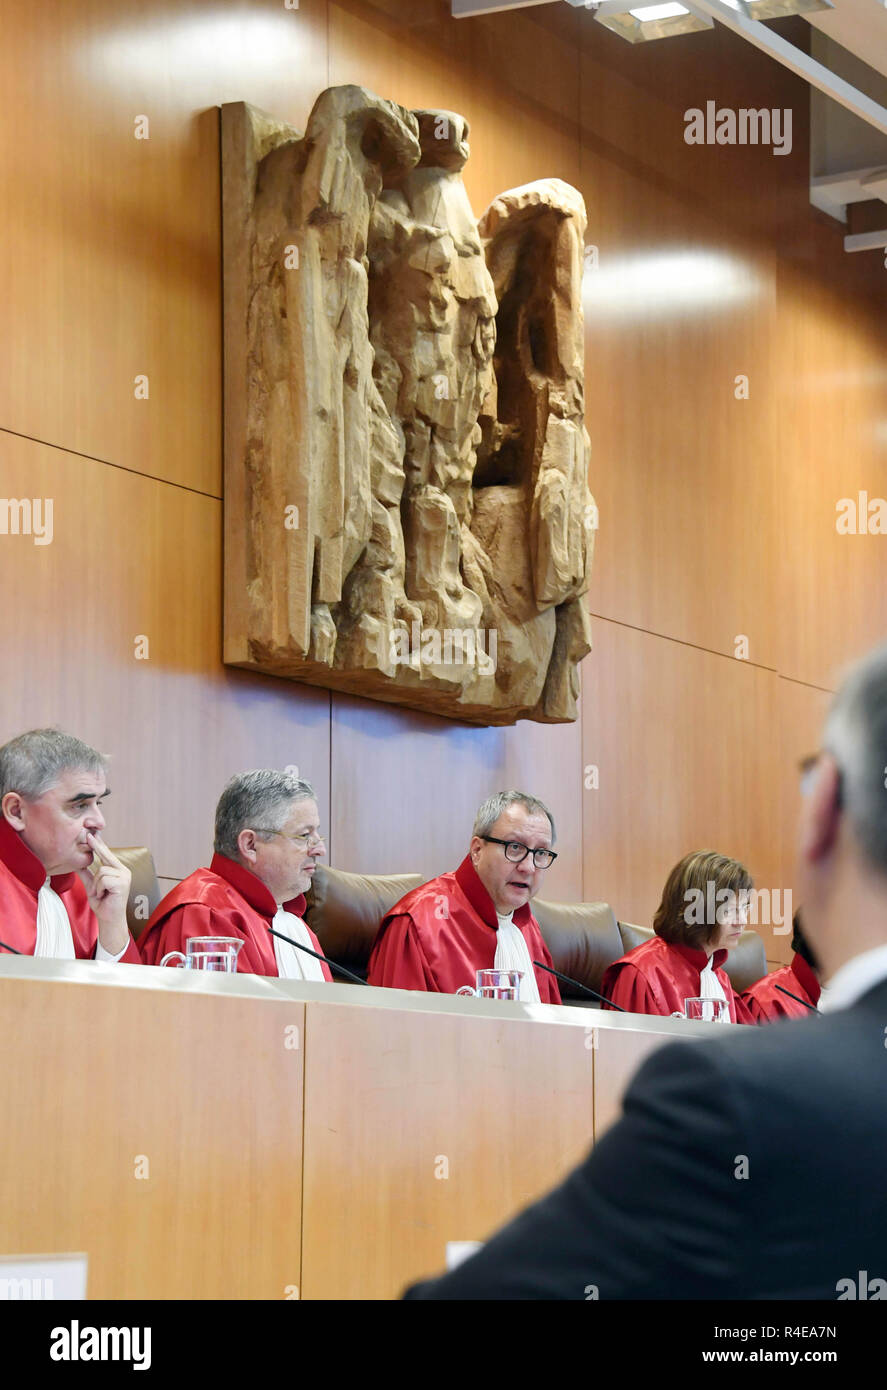 Karlsruhe, Germany. 27th Nov, 2018. The Second Senate of the Federal Constitutional Court, (l-r) Peter Müller, Peter M. Huber, Chairman Andreas Voßkuhle, Monika Hermanns, opens the oral hearing in the matter of the 'European Banking Union'. This concerns central banking supervision in the euro area. Credit: Uli Deck/dpa/Alamy Live News - Stock Image